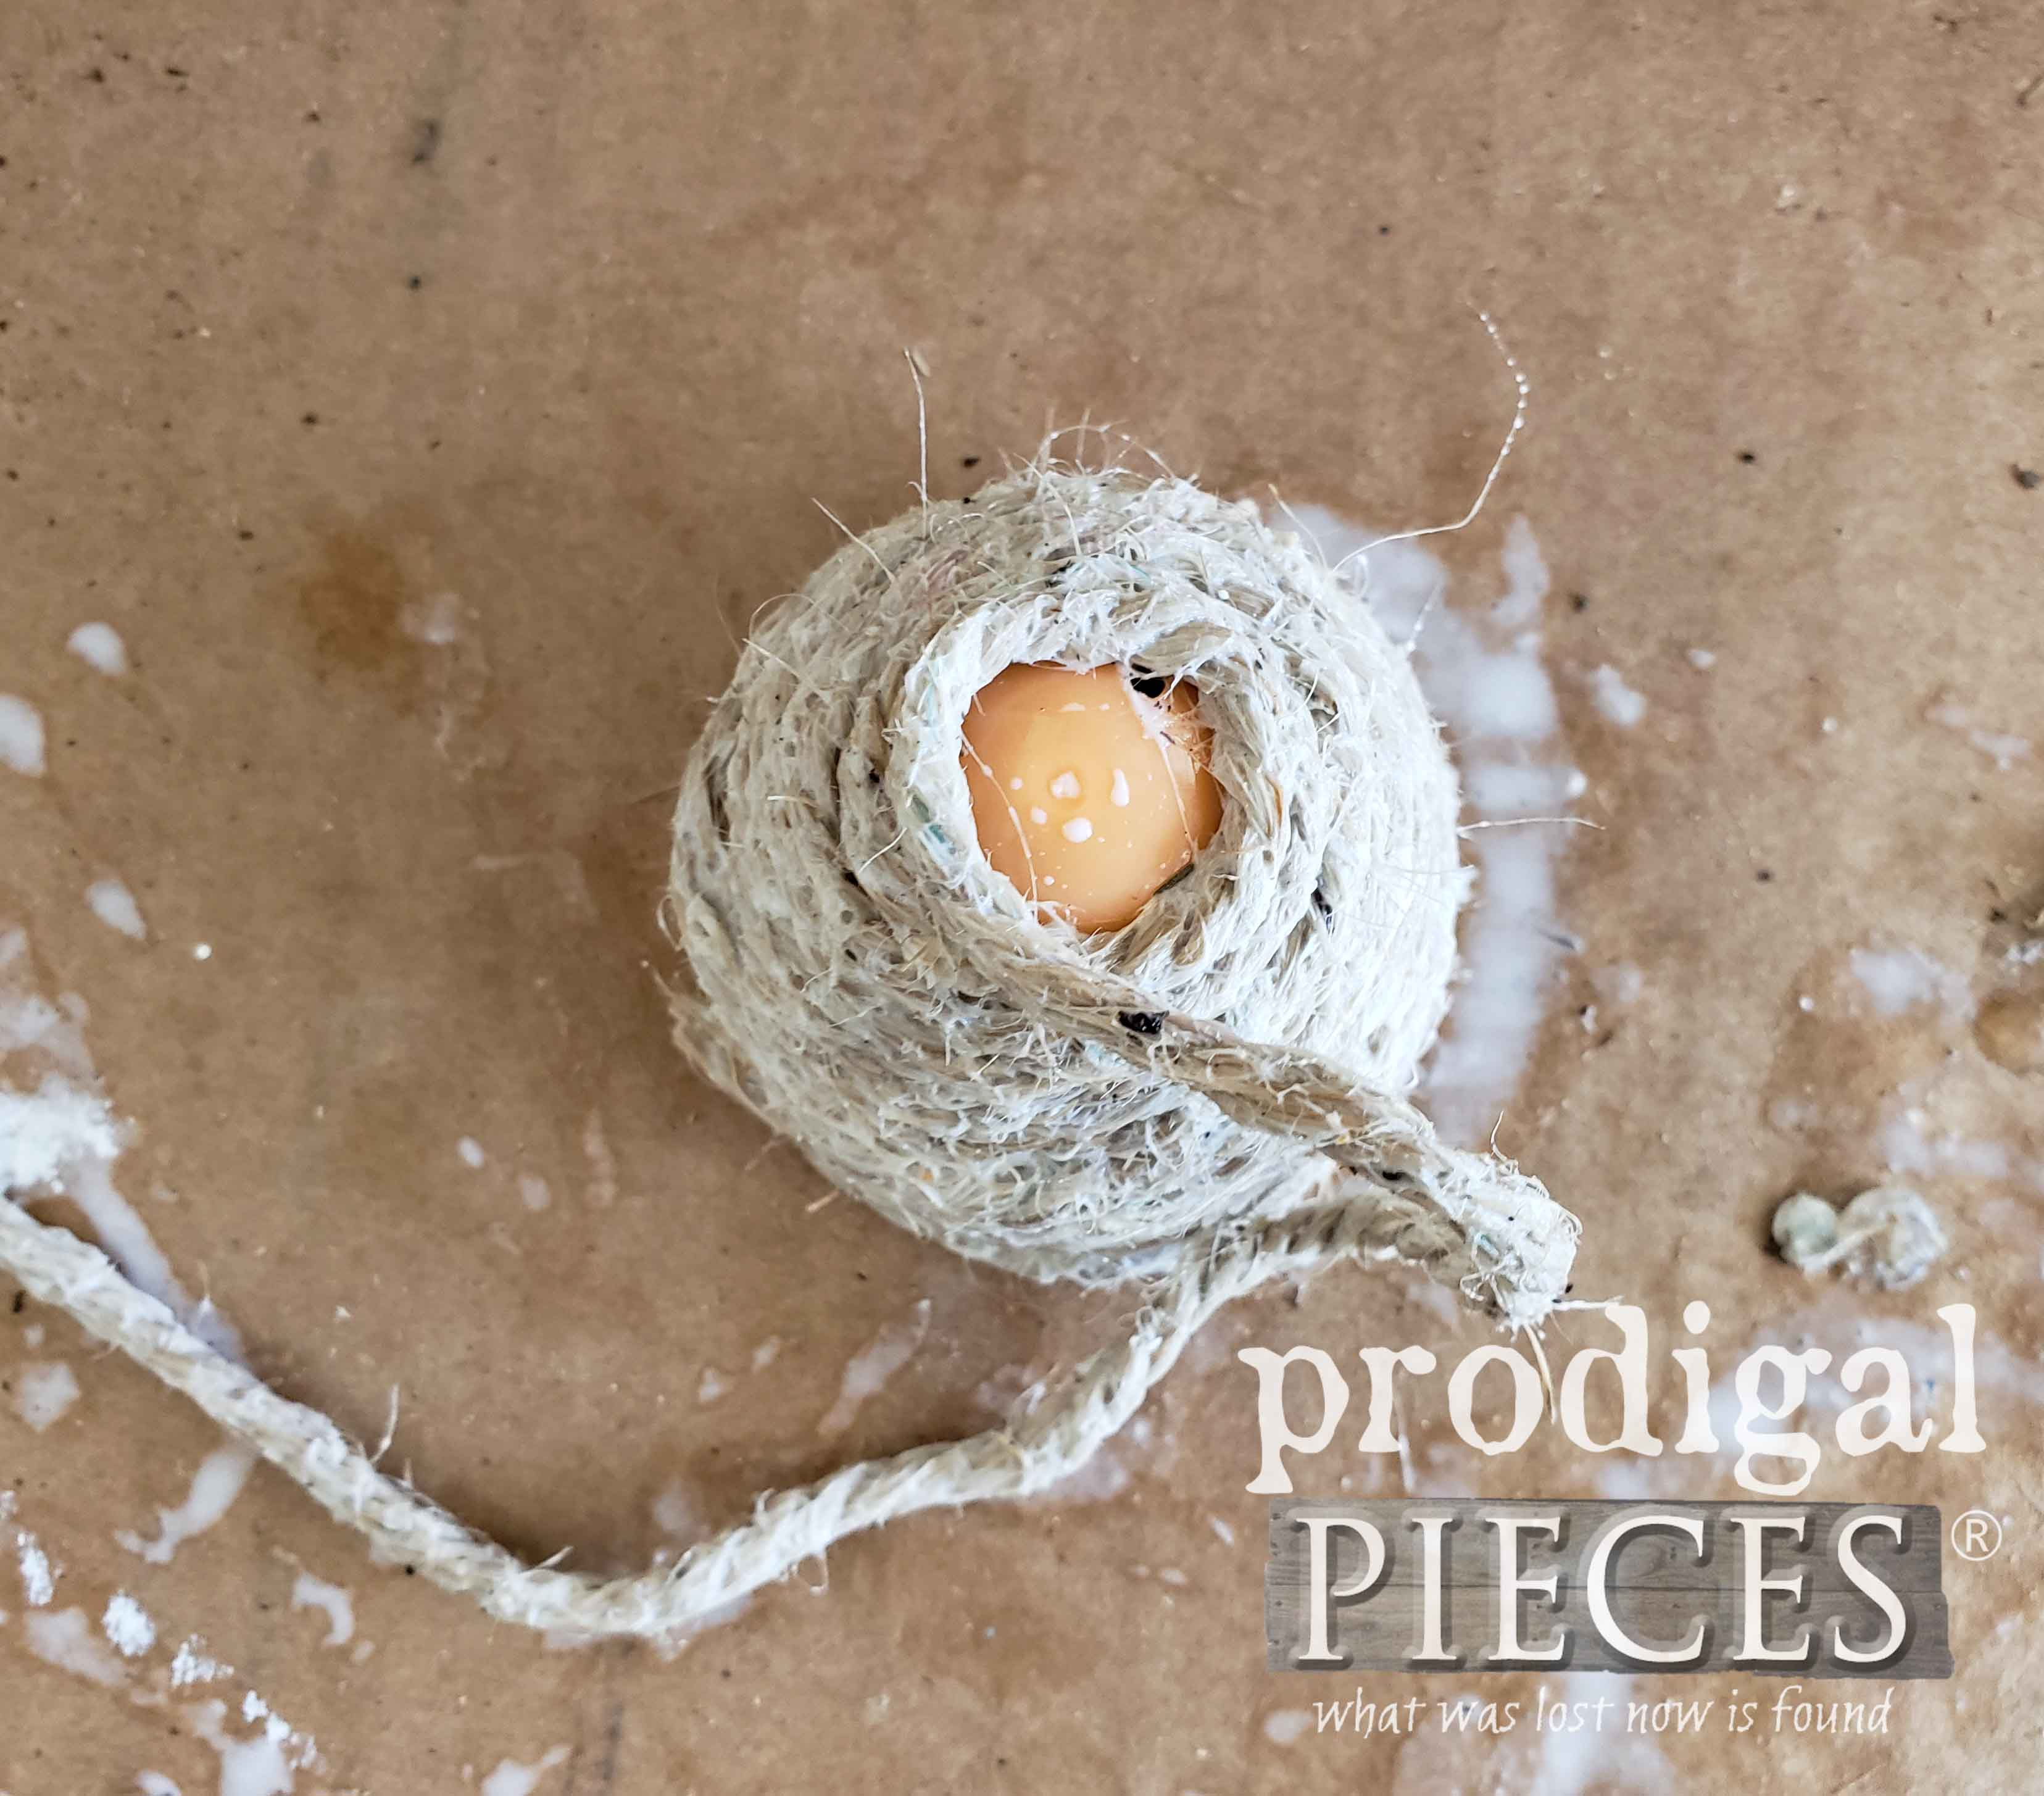 Wrapping Twine to Make Miniature Bee Skep by Prodigal Pieces | prodigalpieces.com